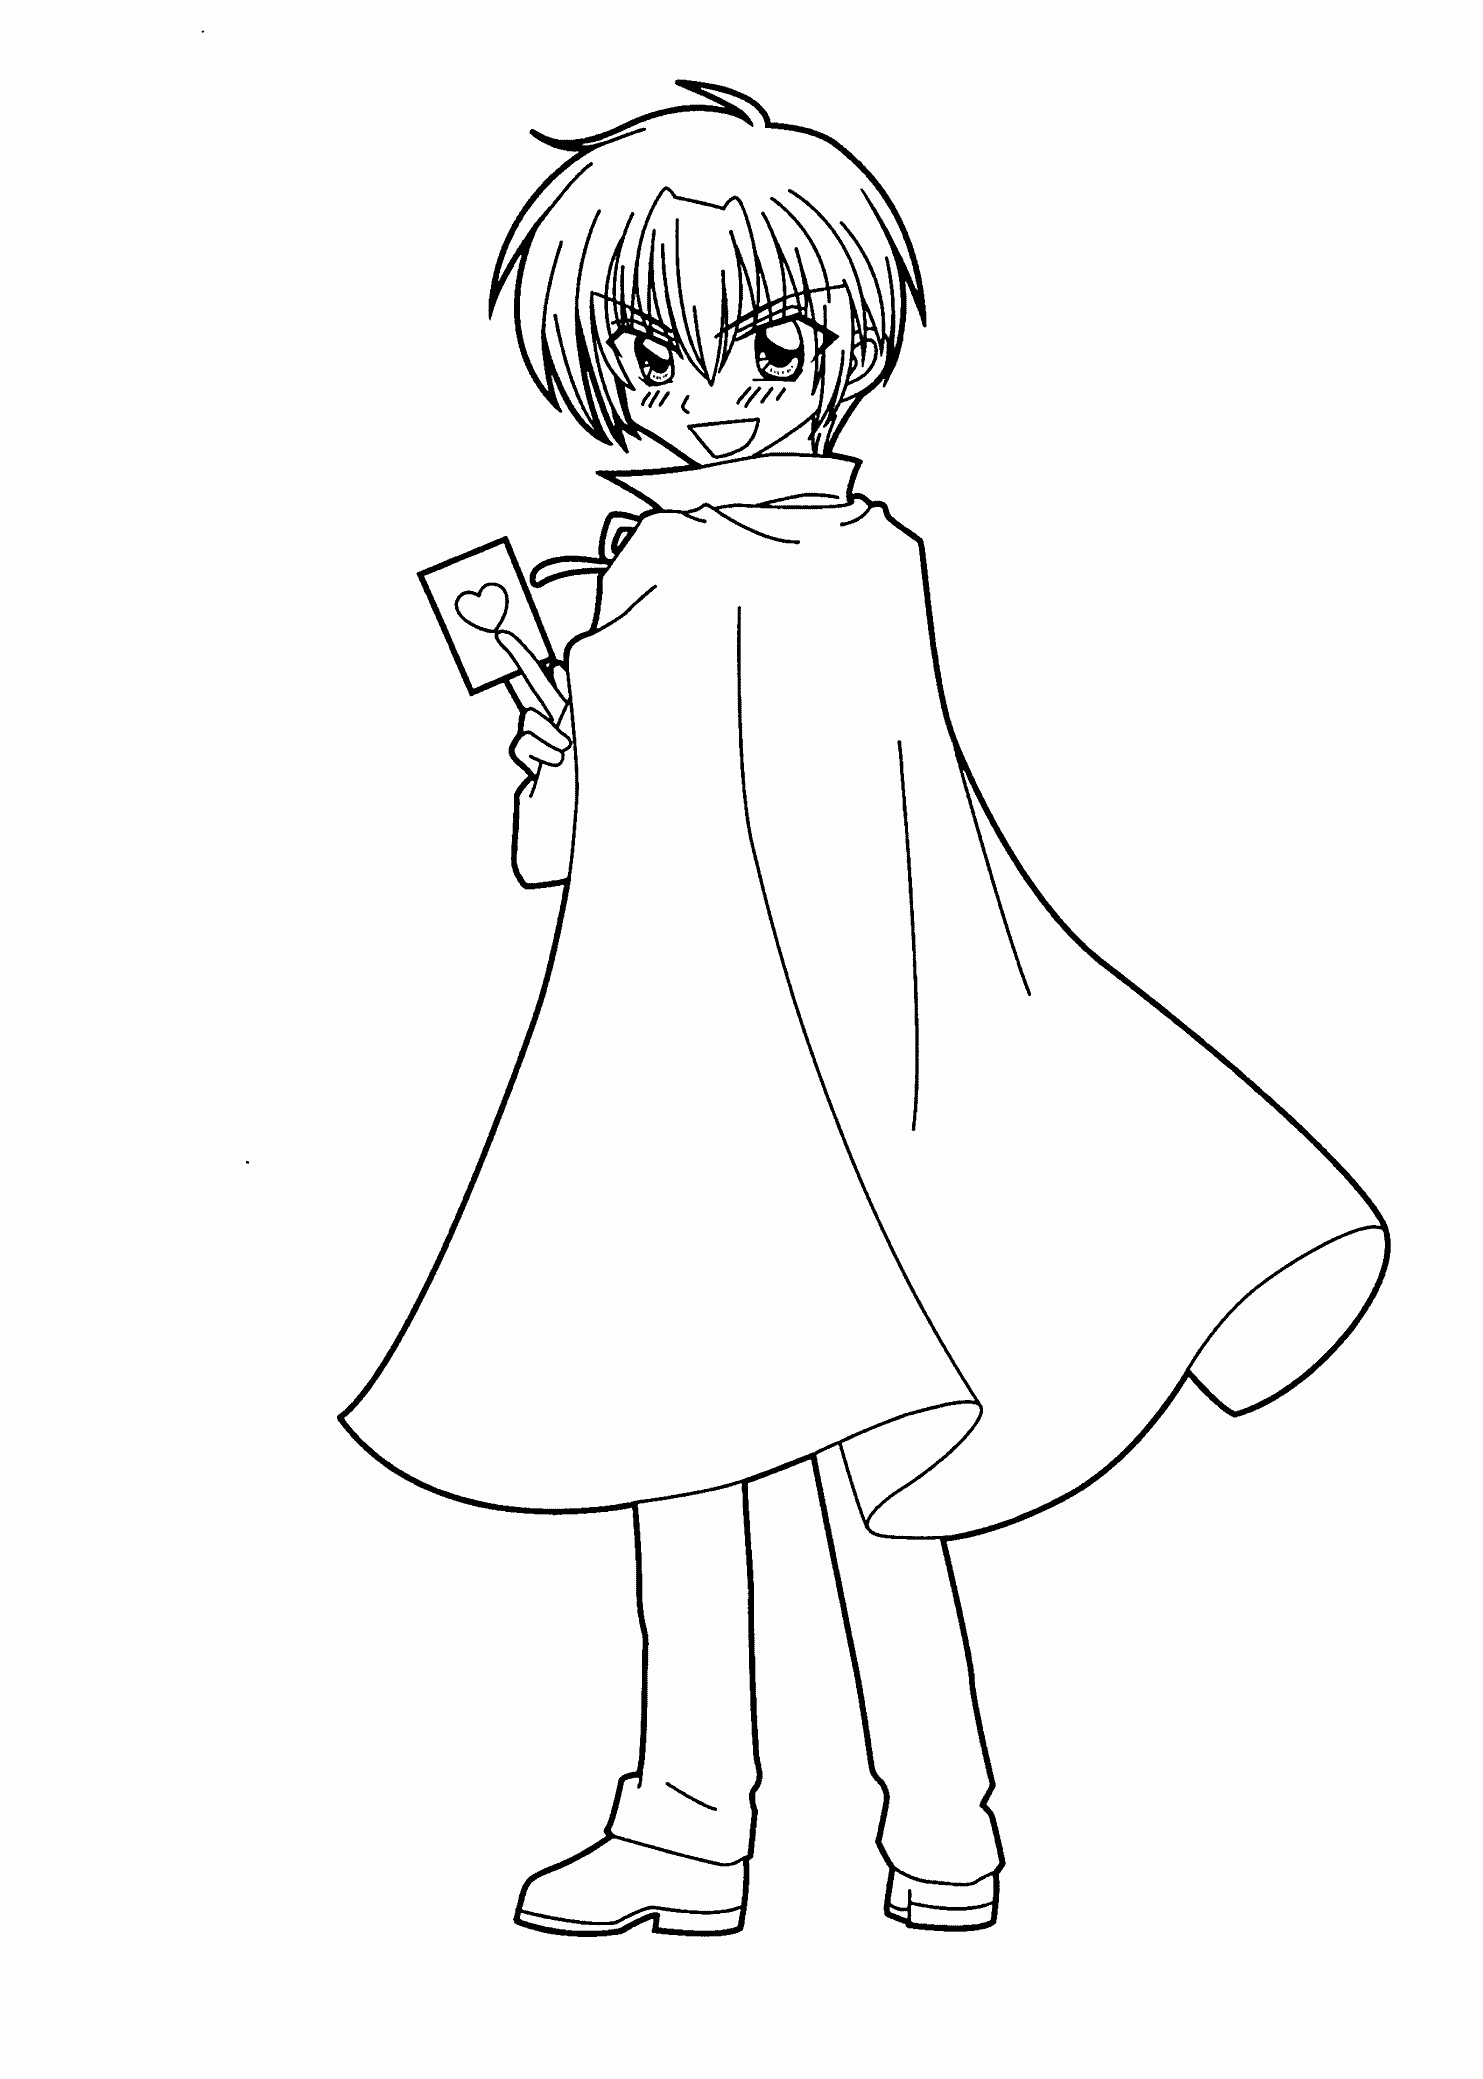 Jack Frost Coloring Pages At Getcolorings